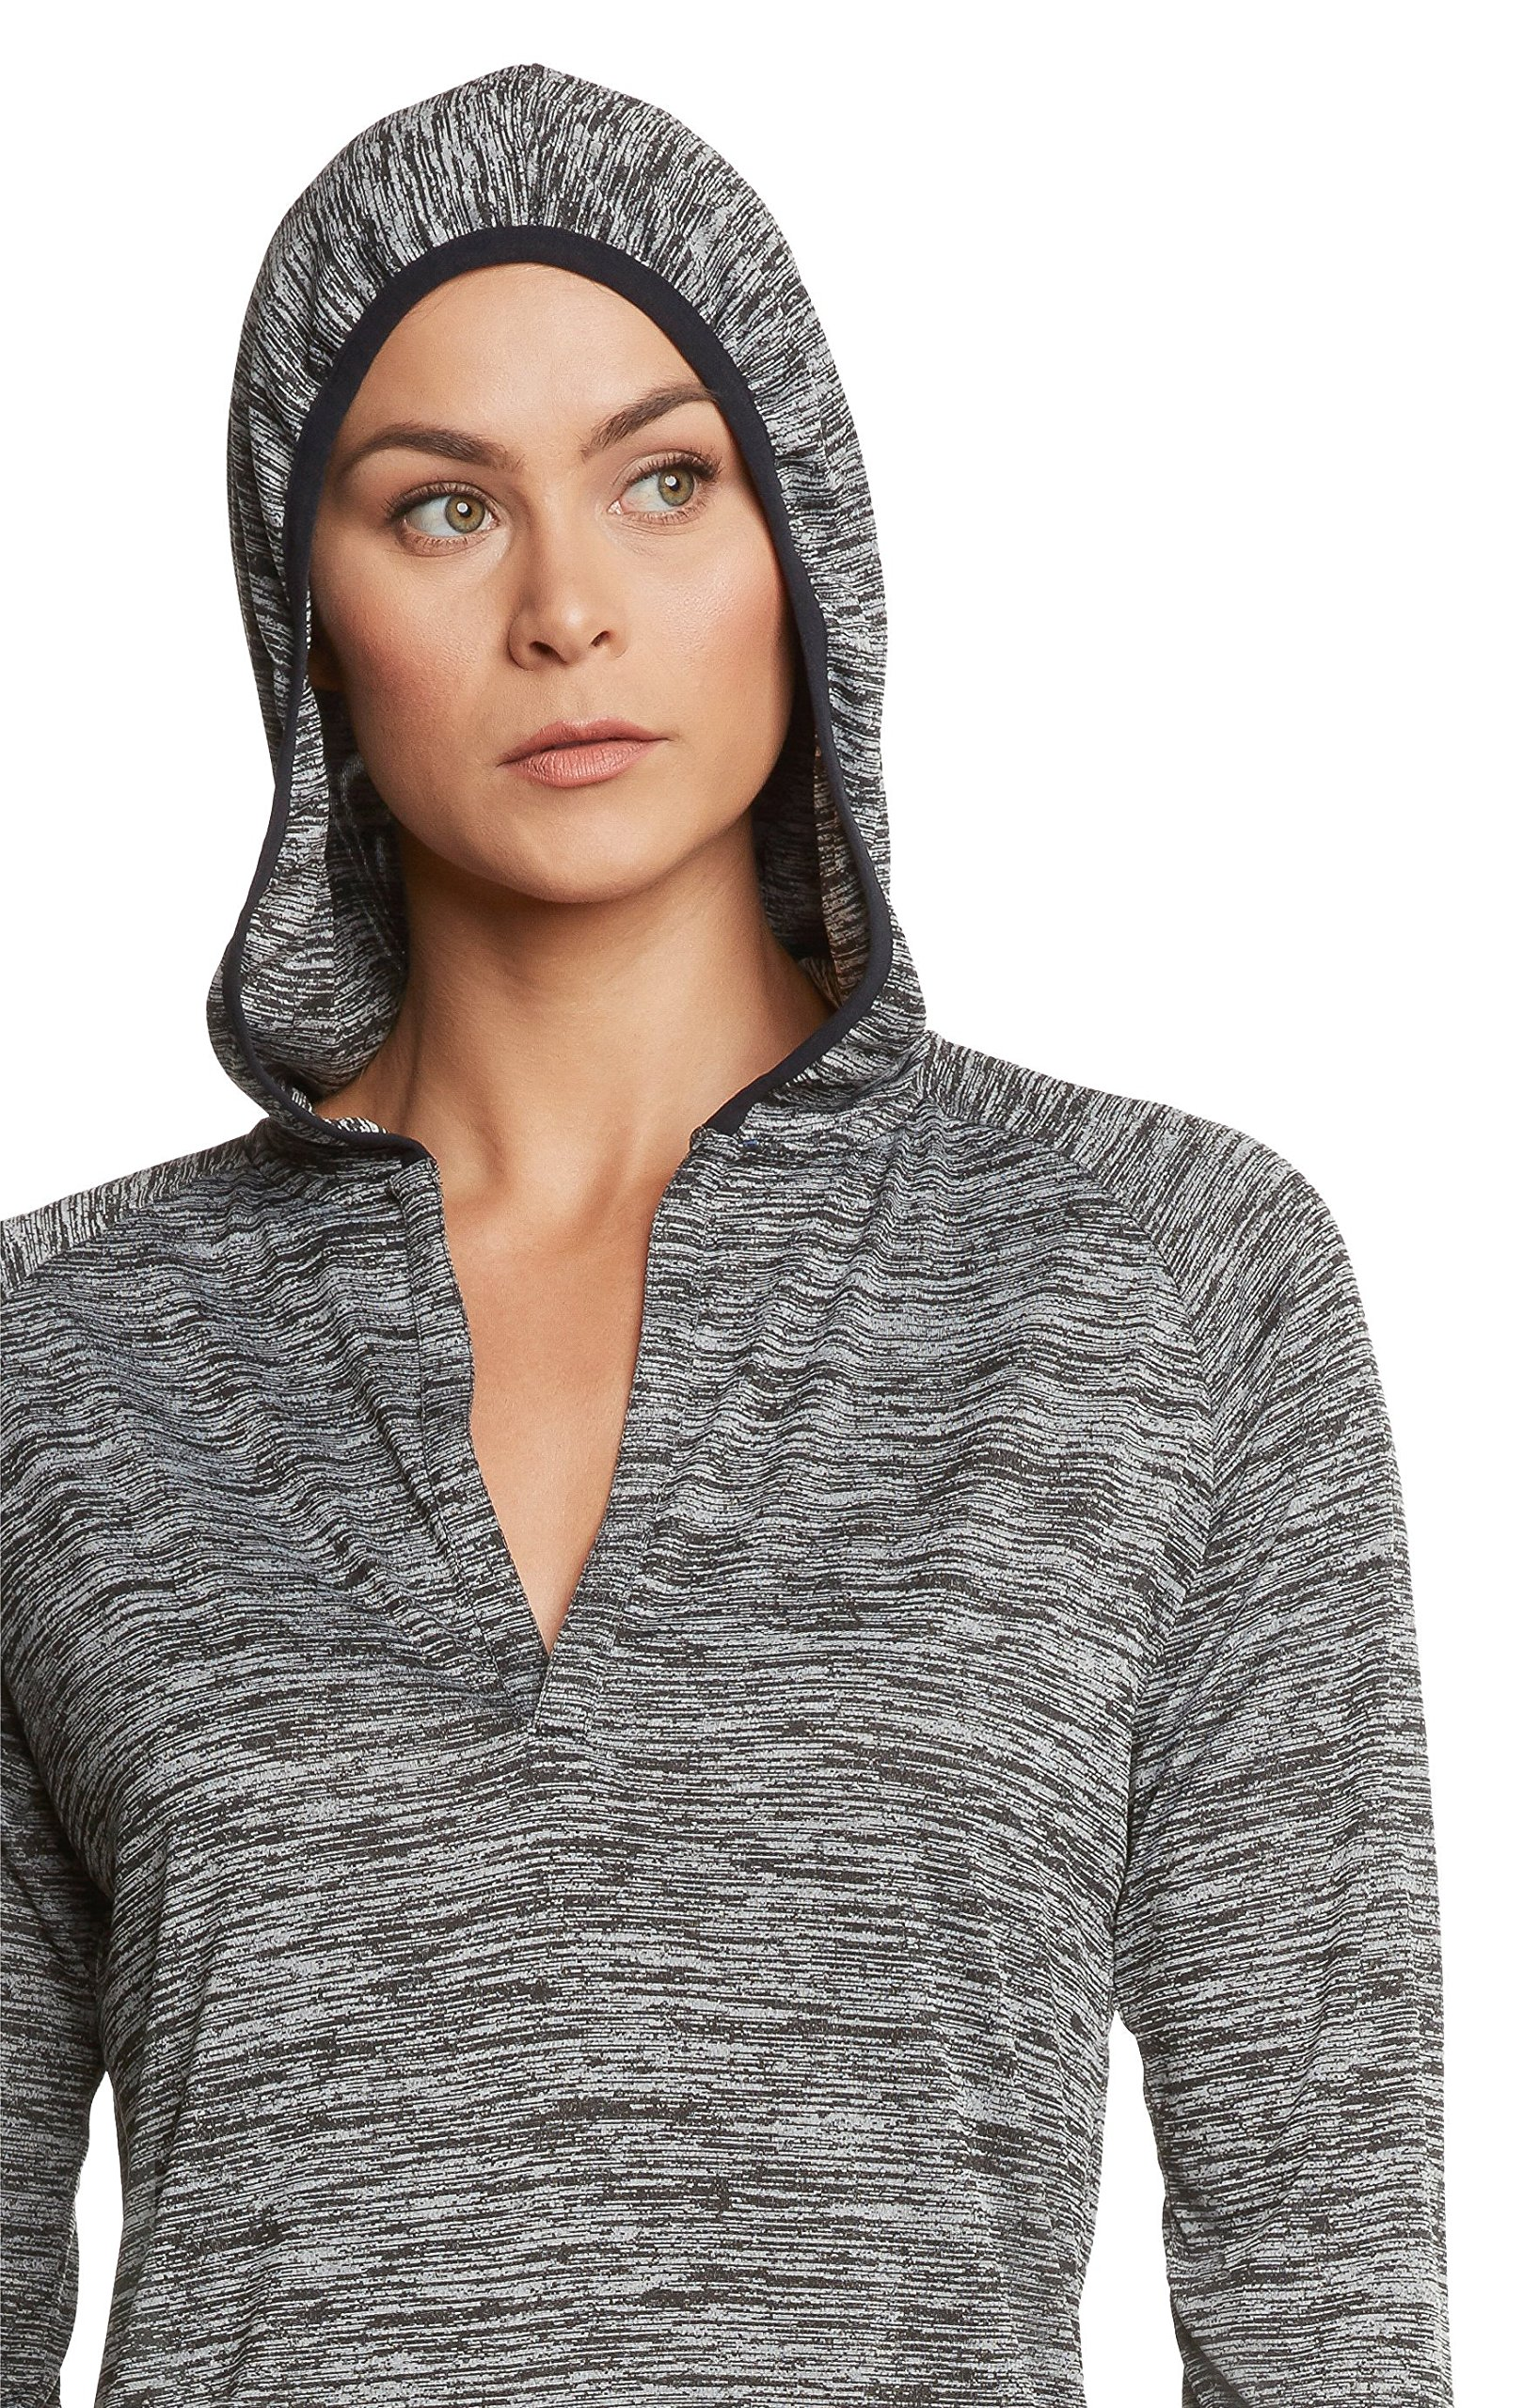 Jolt Gear Hoodies for Women - Pullover Hoodie Running Top - Light Weight Dry Fit Fabric - FREE TOWEL INCLUDED! by Jolt Gear (Image #1)